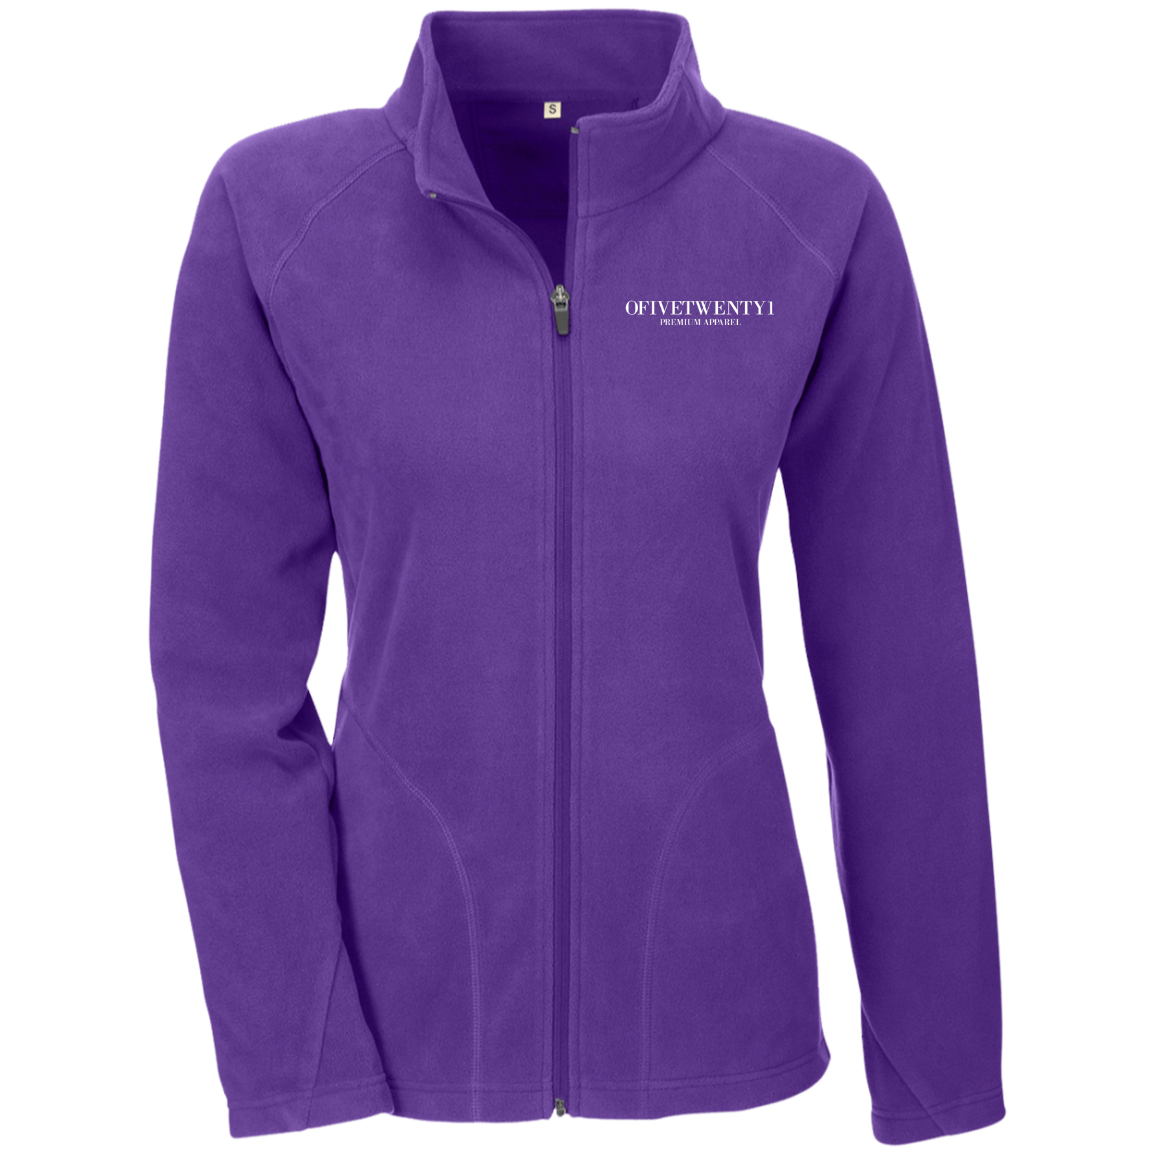 OFiveTwenty1 Ladies' Microfleece